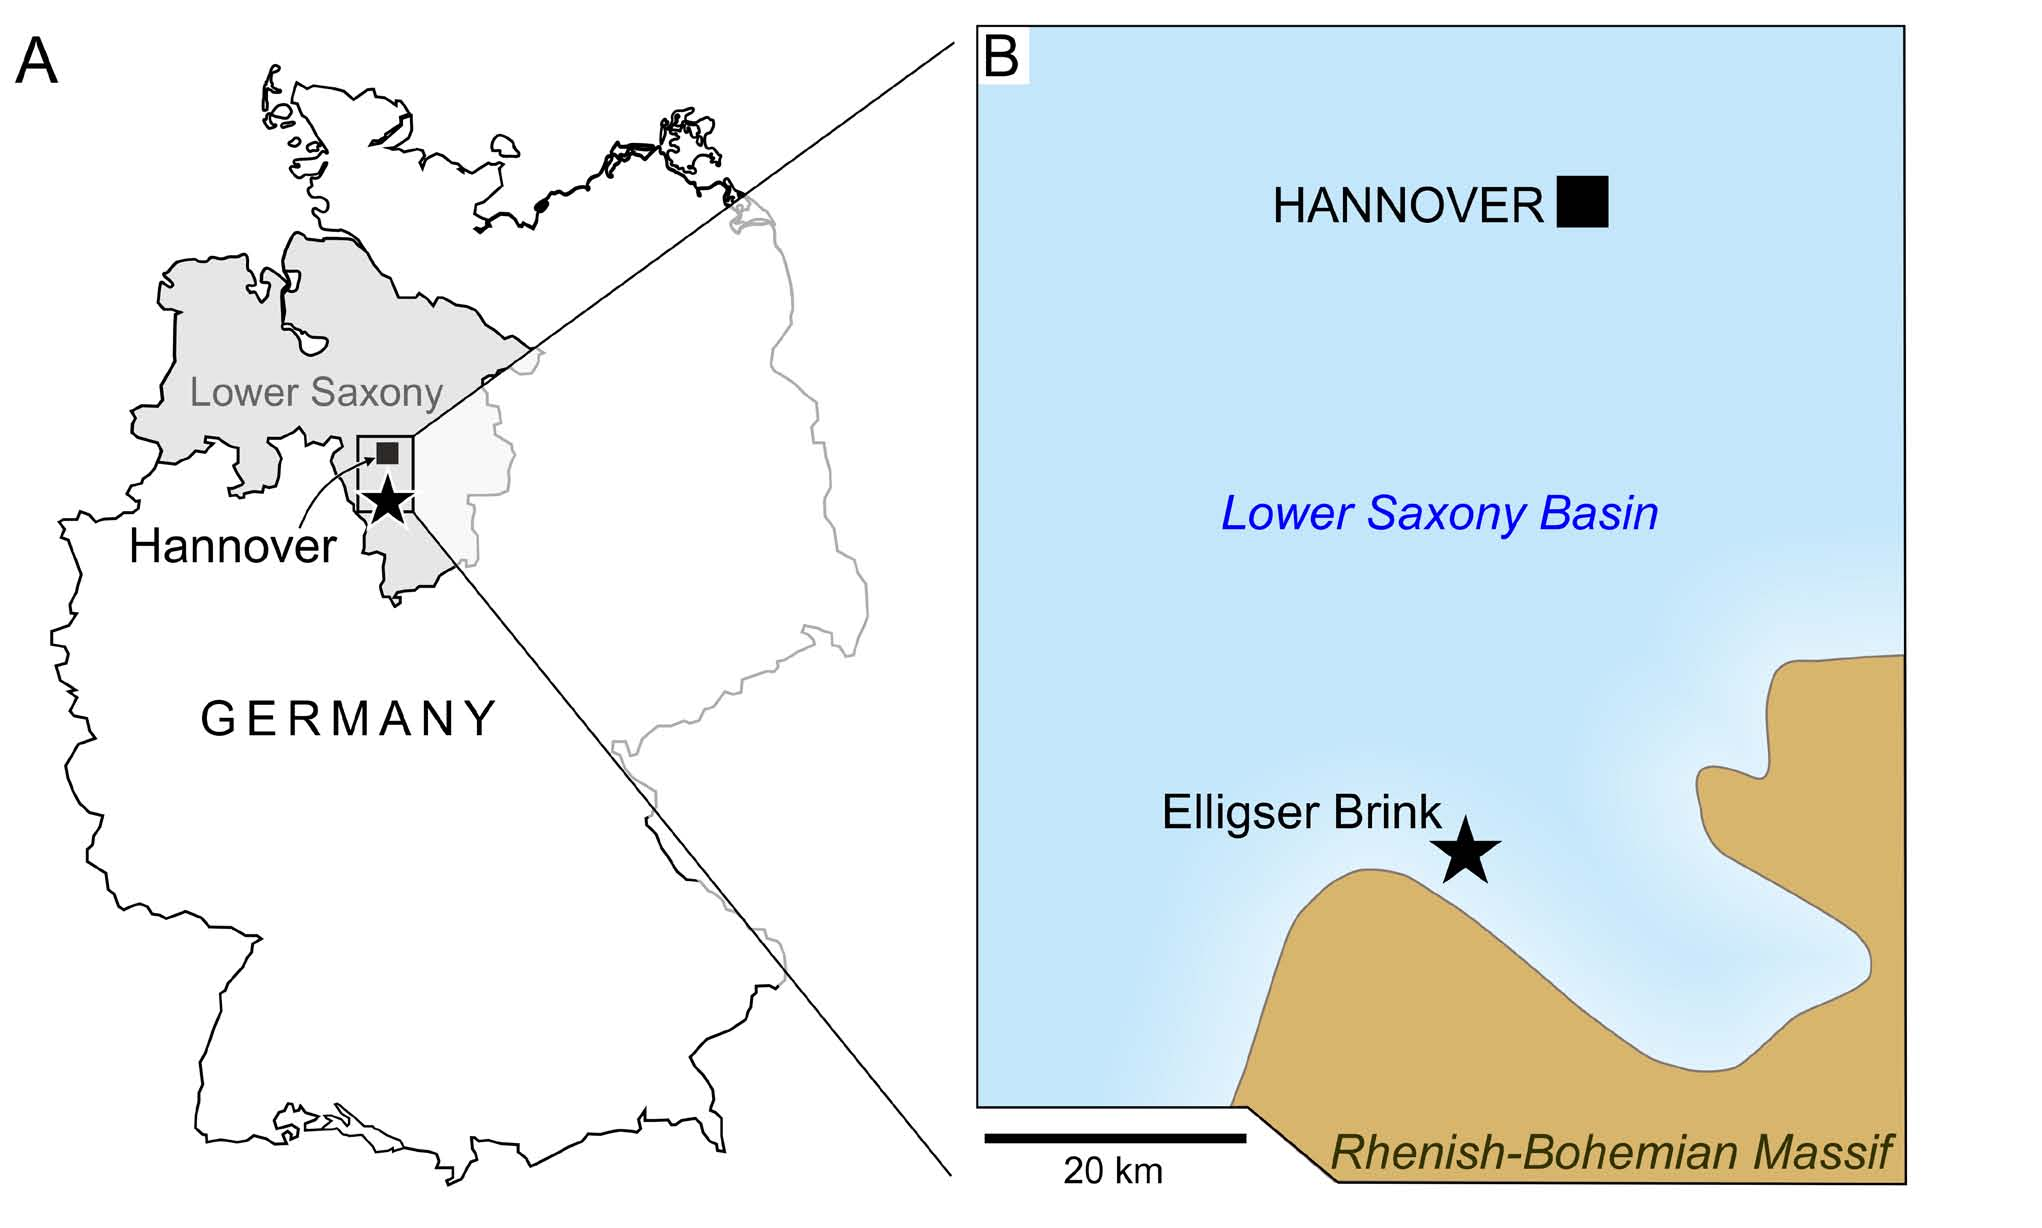 A) Location of the Elligser Brink locality in the Hils mountains (asterisk) of southern Lower Saxony (frame); B) Palaeogeography of southern Lower Saxony during the Hauterivian (after Mutterlose, 1984), indicating the near-shore position of the Elligser Brink.